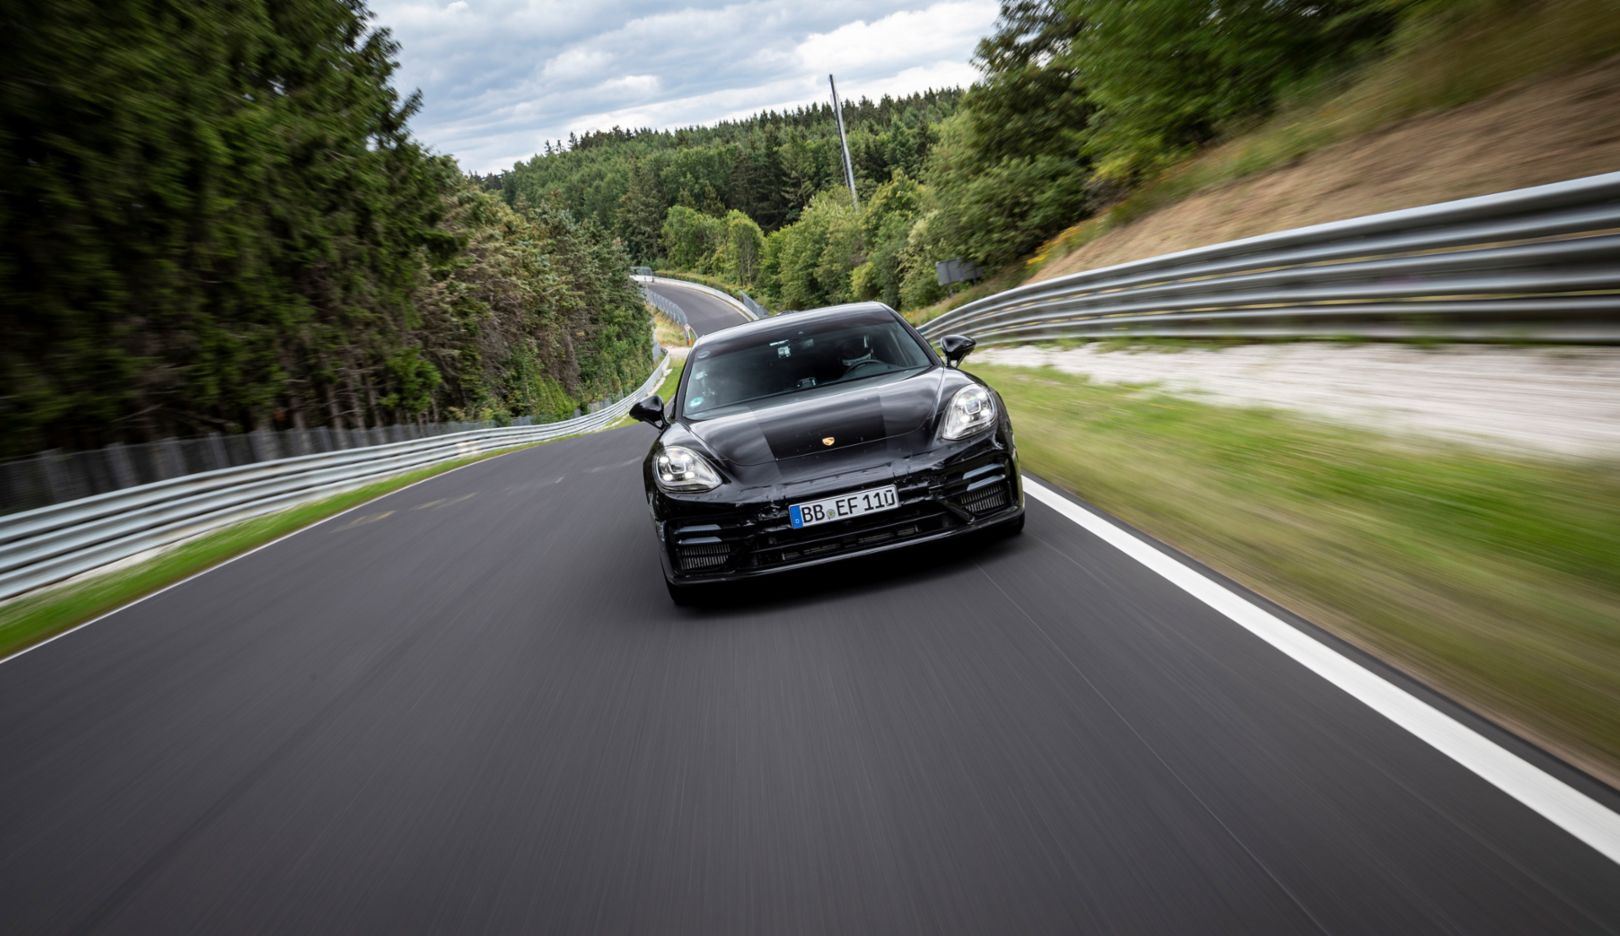 WATCH: The Porsche Panamera Beat the Mercedes-AMG GT 63 As The Fastest Executive Car on the 'Ring